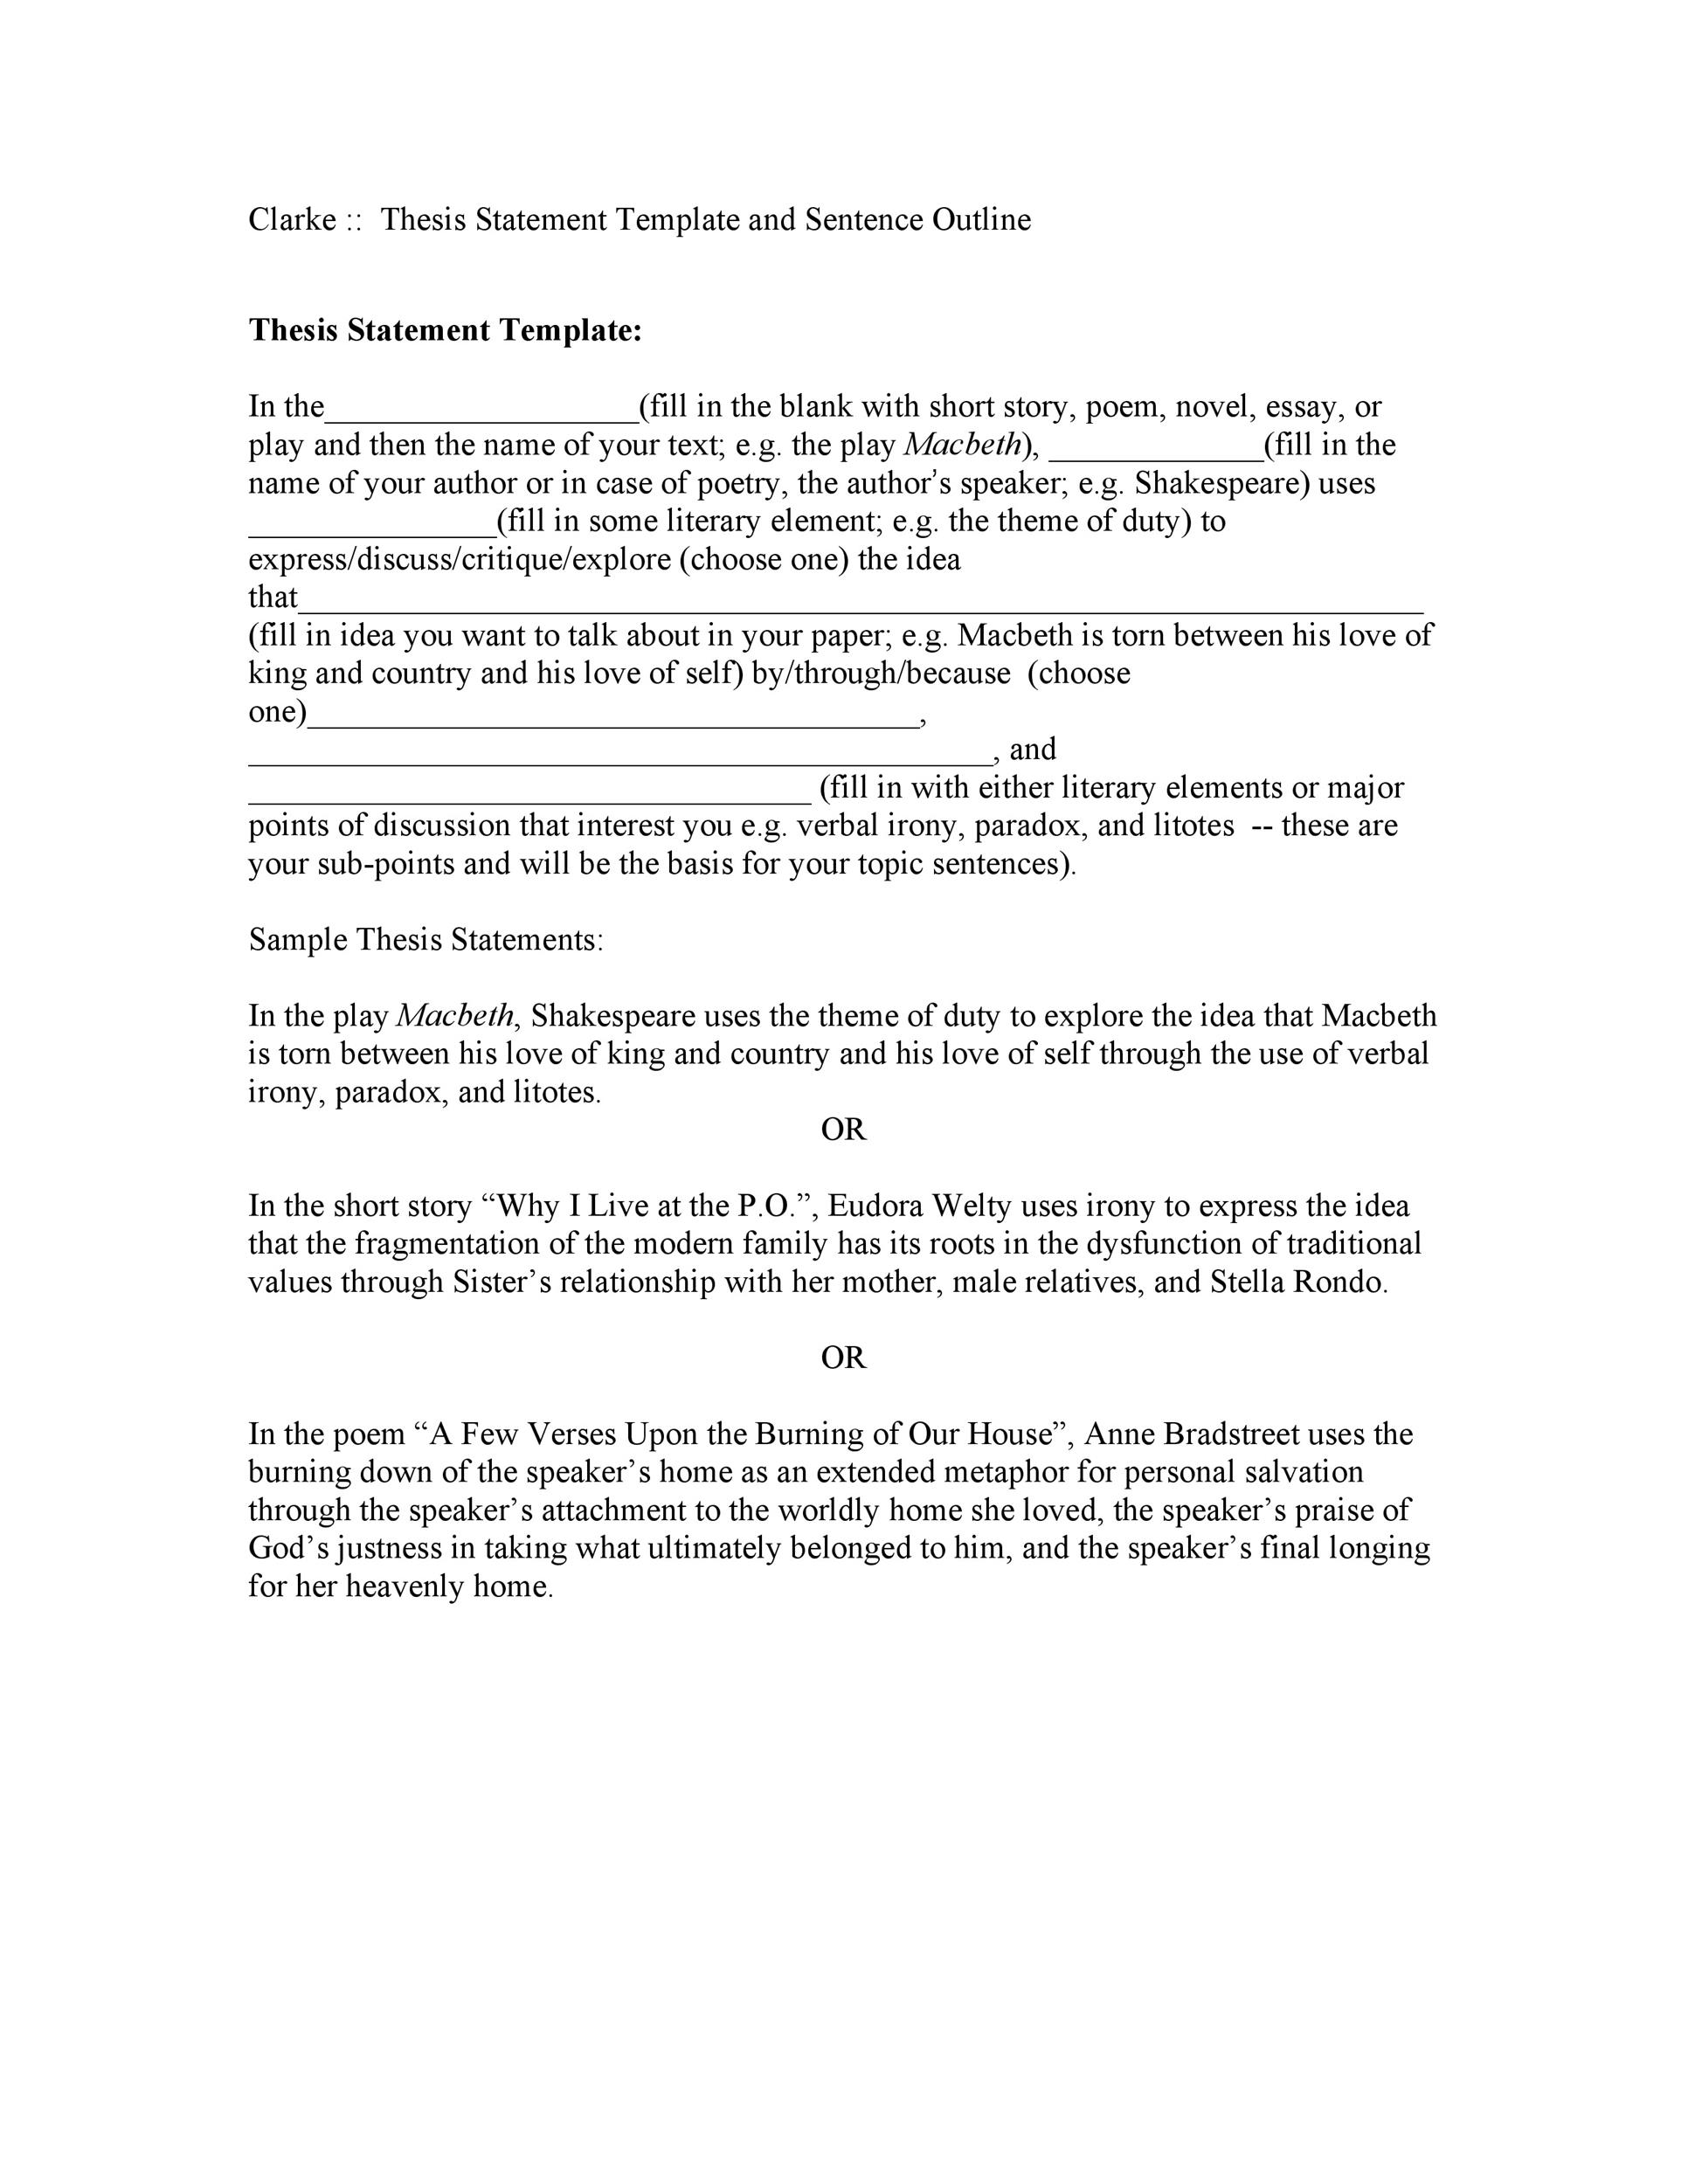 Free thesis statement template 03